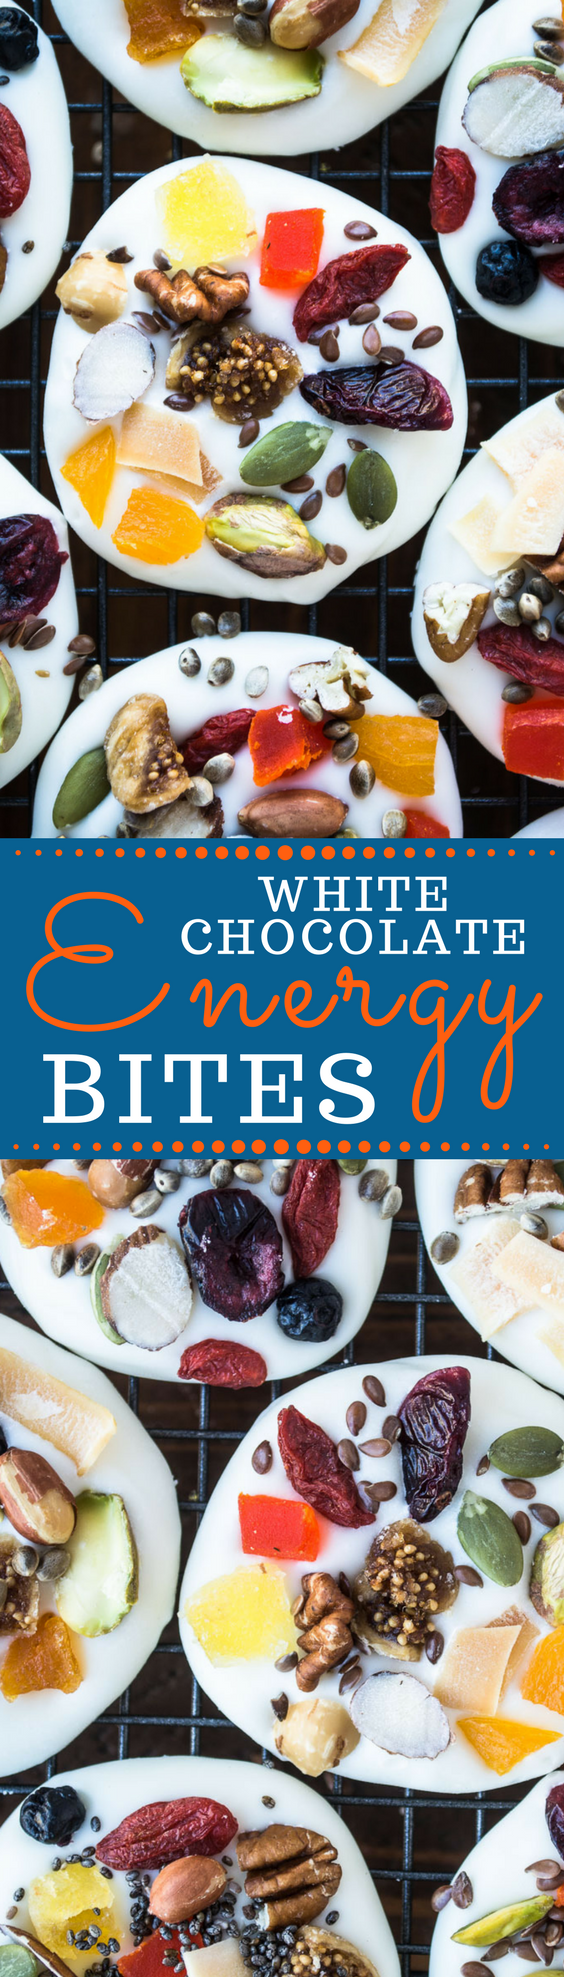 White Chocolate Energy Bites are supercharged little bites of bliss, the creamy white chocolate is topped with colorful and crunchy dried fruits, nuts, and seeds ~ yum! #candy #energybites #healthysnacks #homemadecandy #healthy #healthydessert #glutenfree #superfoods #detox #bark #whitechocolatebark #holidaydessert #foodgift #chocolatemedallions #chiaseeds #driedfruit #driedcranberries #pistachios